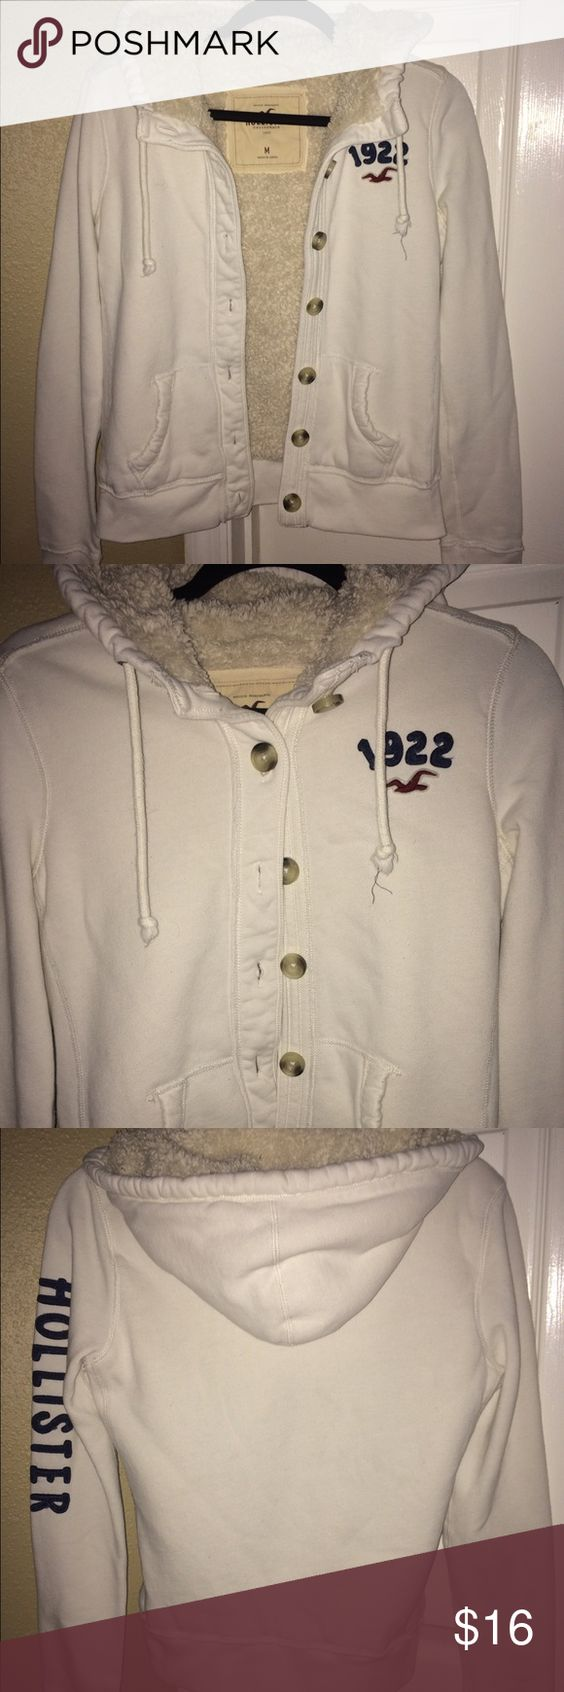 Hollister Jacket Hollister hoodie/jacket, size M, fits true to size, wore, but still very nice condition Hollister Tops Sweatshirts & Hoodies